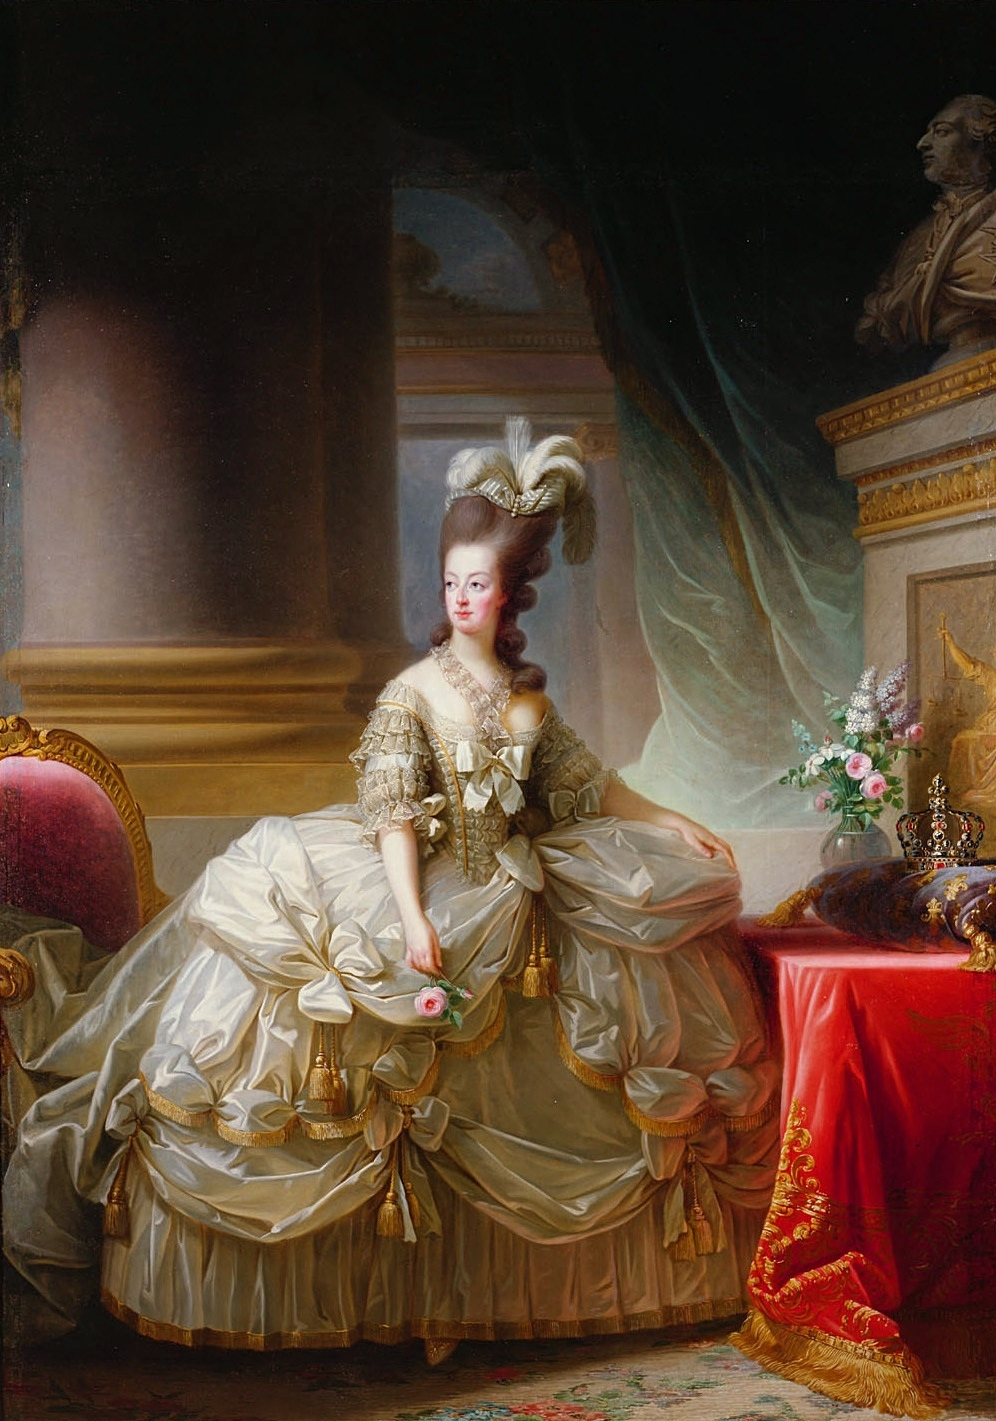 women s fashion during and after the french revolution to surprisingly marie antoinette was the one who first popularized the look although she is most remembered for wearing gowns that neoclassicism was supposed